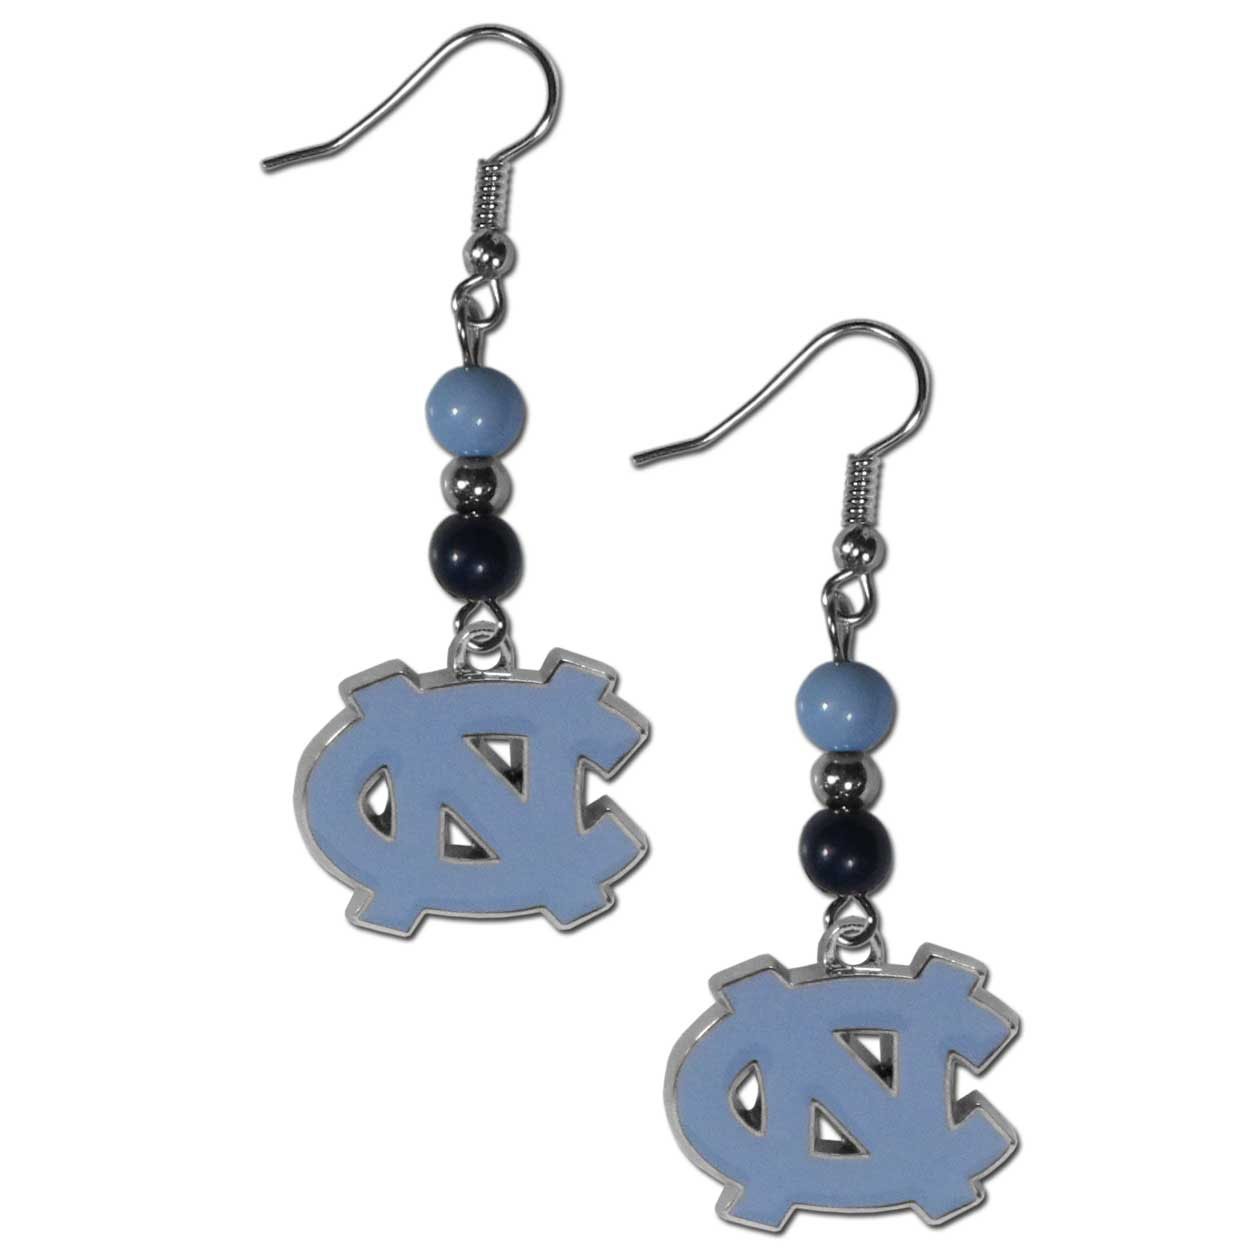 N. Carolina Tar Heels Fan Bead Dangle Earrings - Love your team, show it off with our N. Carolina Tar Heels bead dangle earrings! These super cute earrings hang approximately 2 inches and features 2 team colored beads and a high polish team charm. A must have for game day!